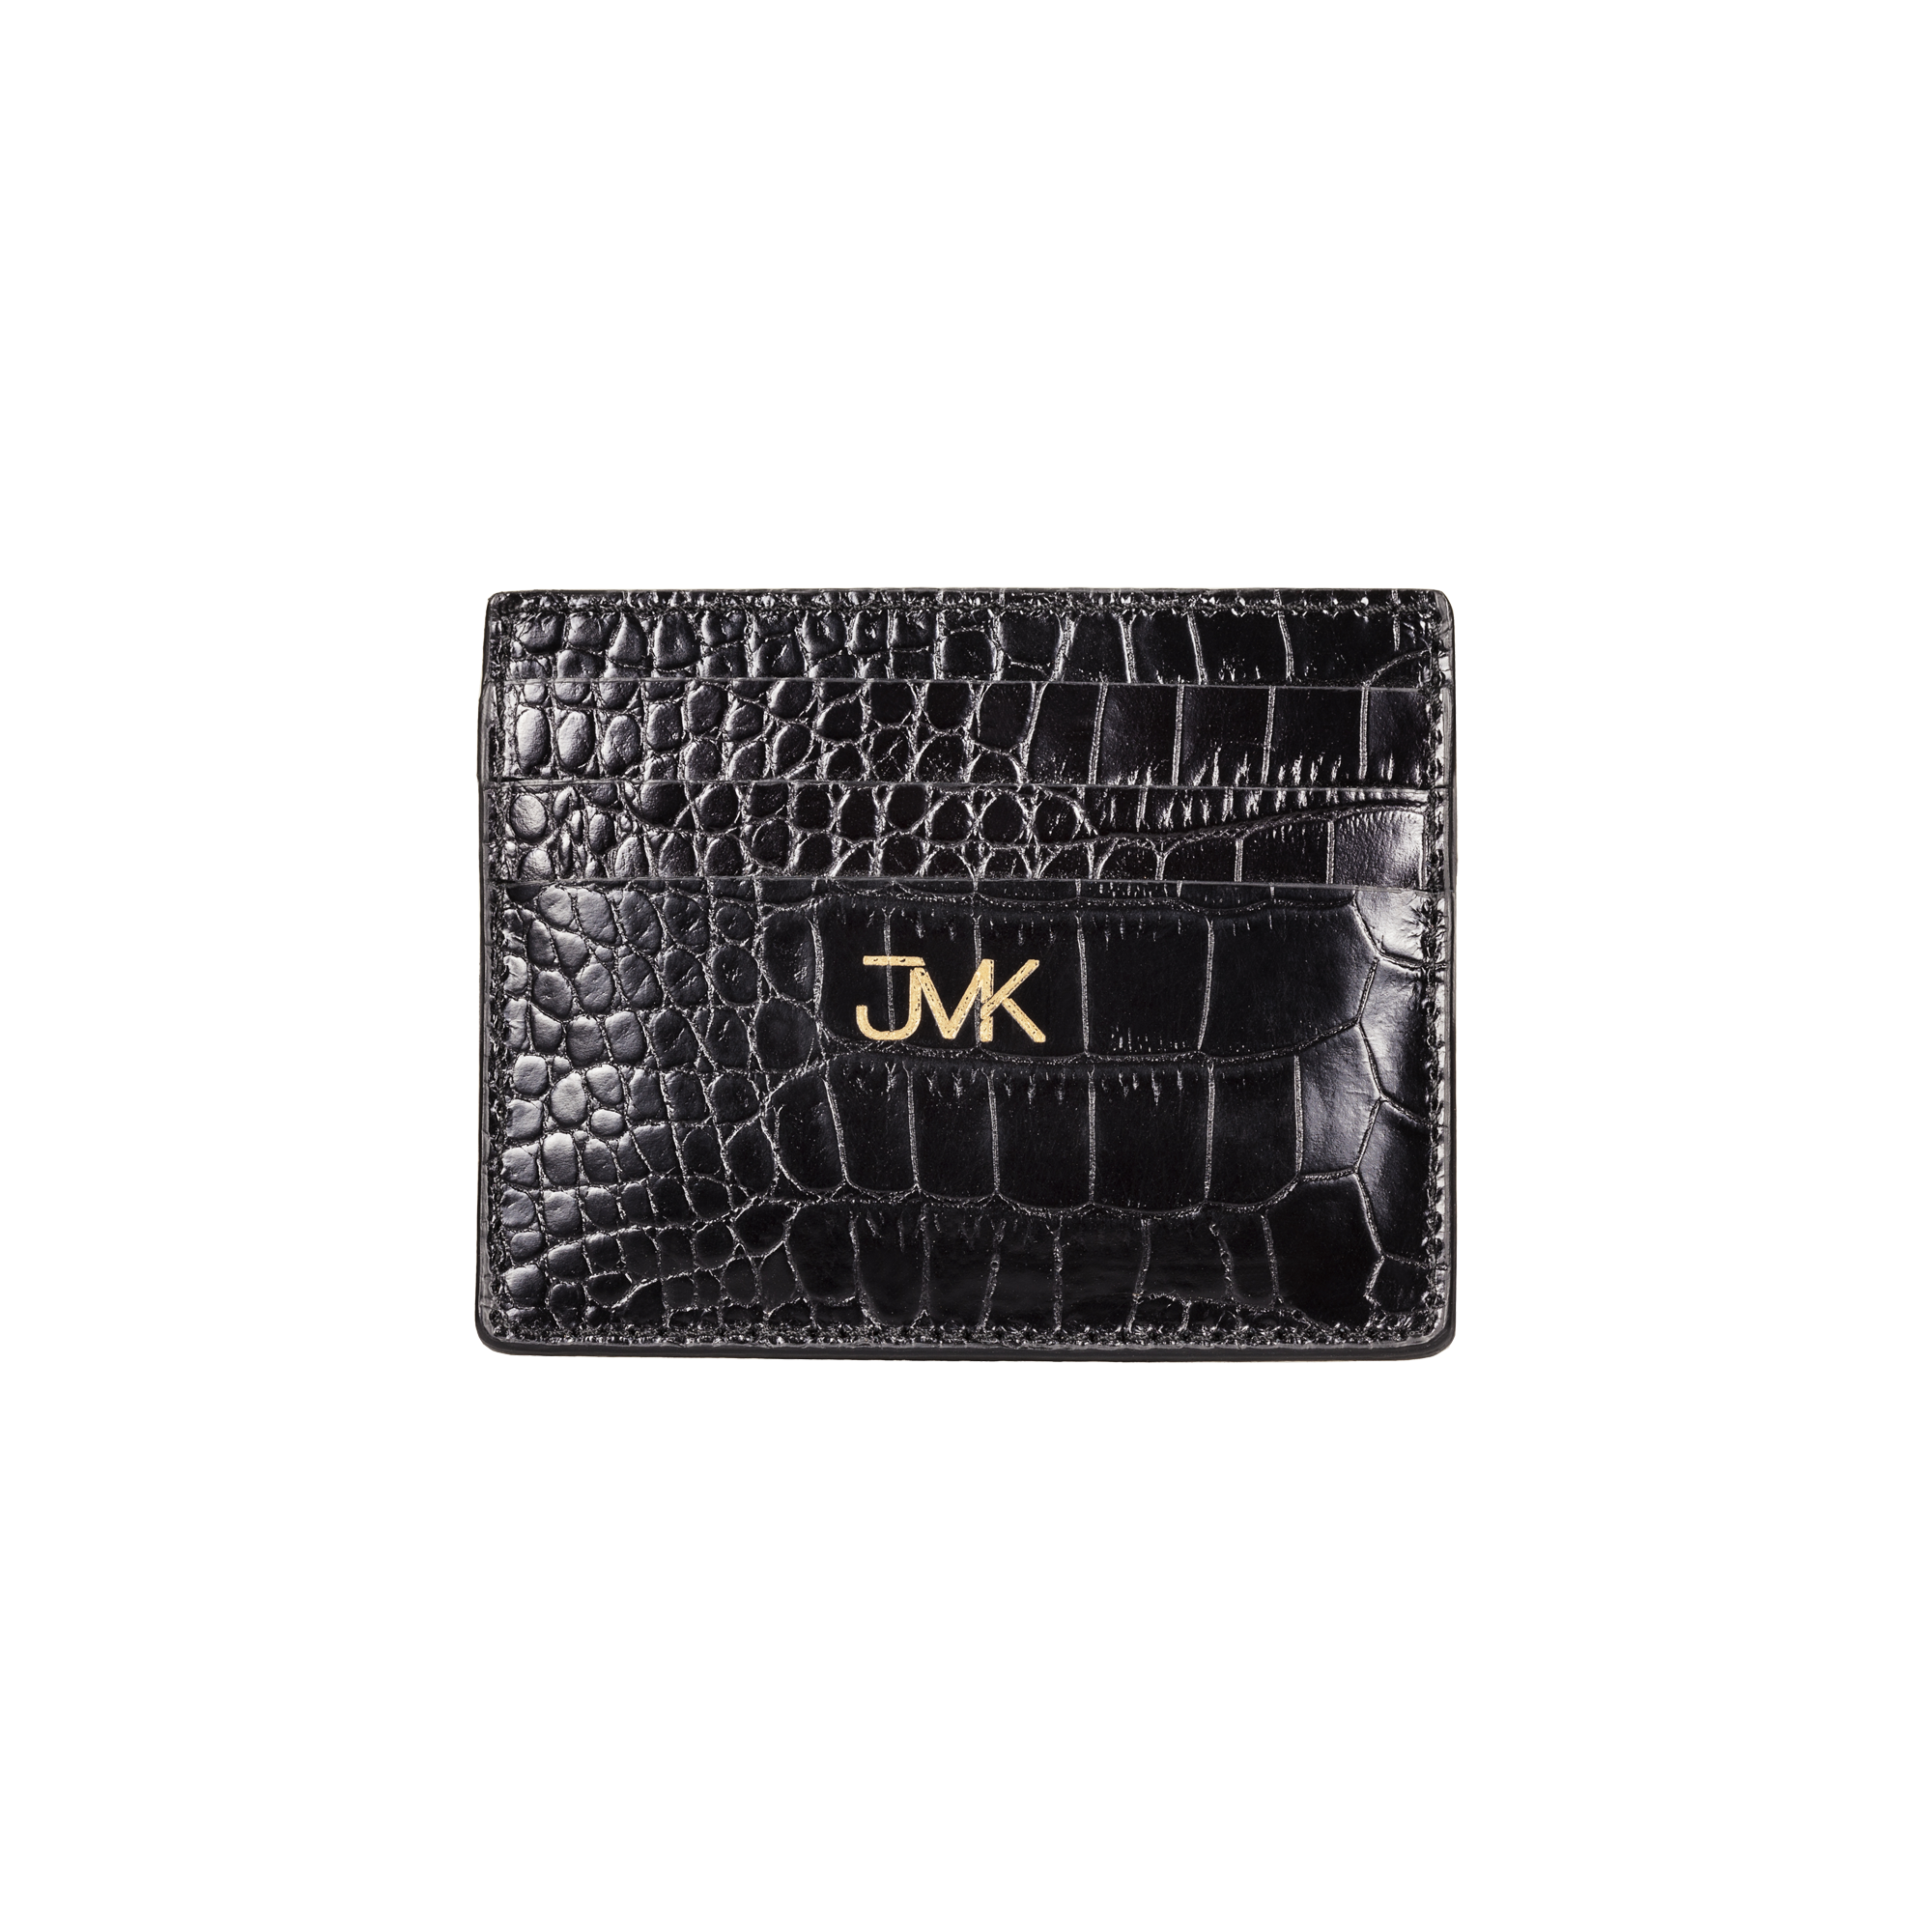 Card Holder - 6 Slots, Croco Leather Black/Red, MAISON JMK-VONMEL Luxe Gifts